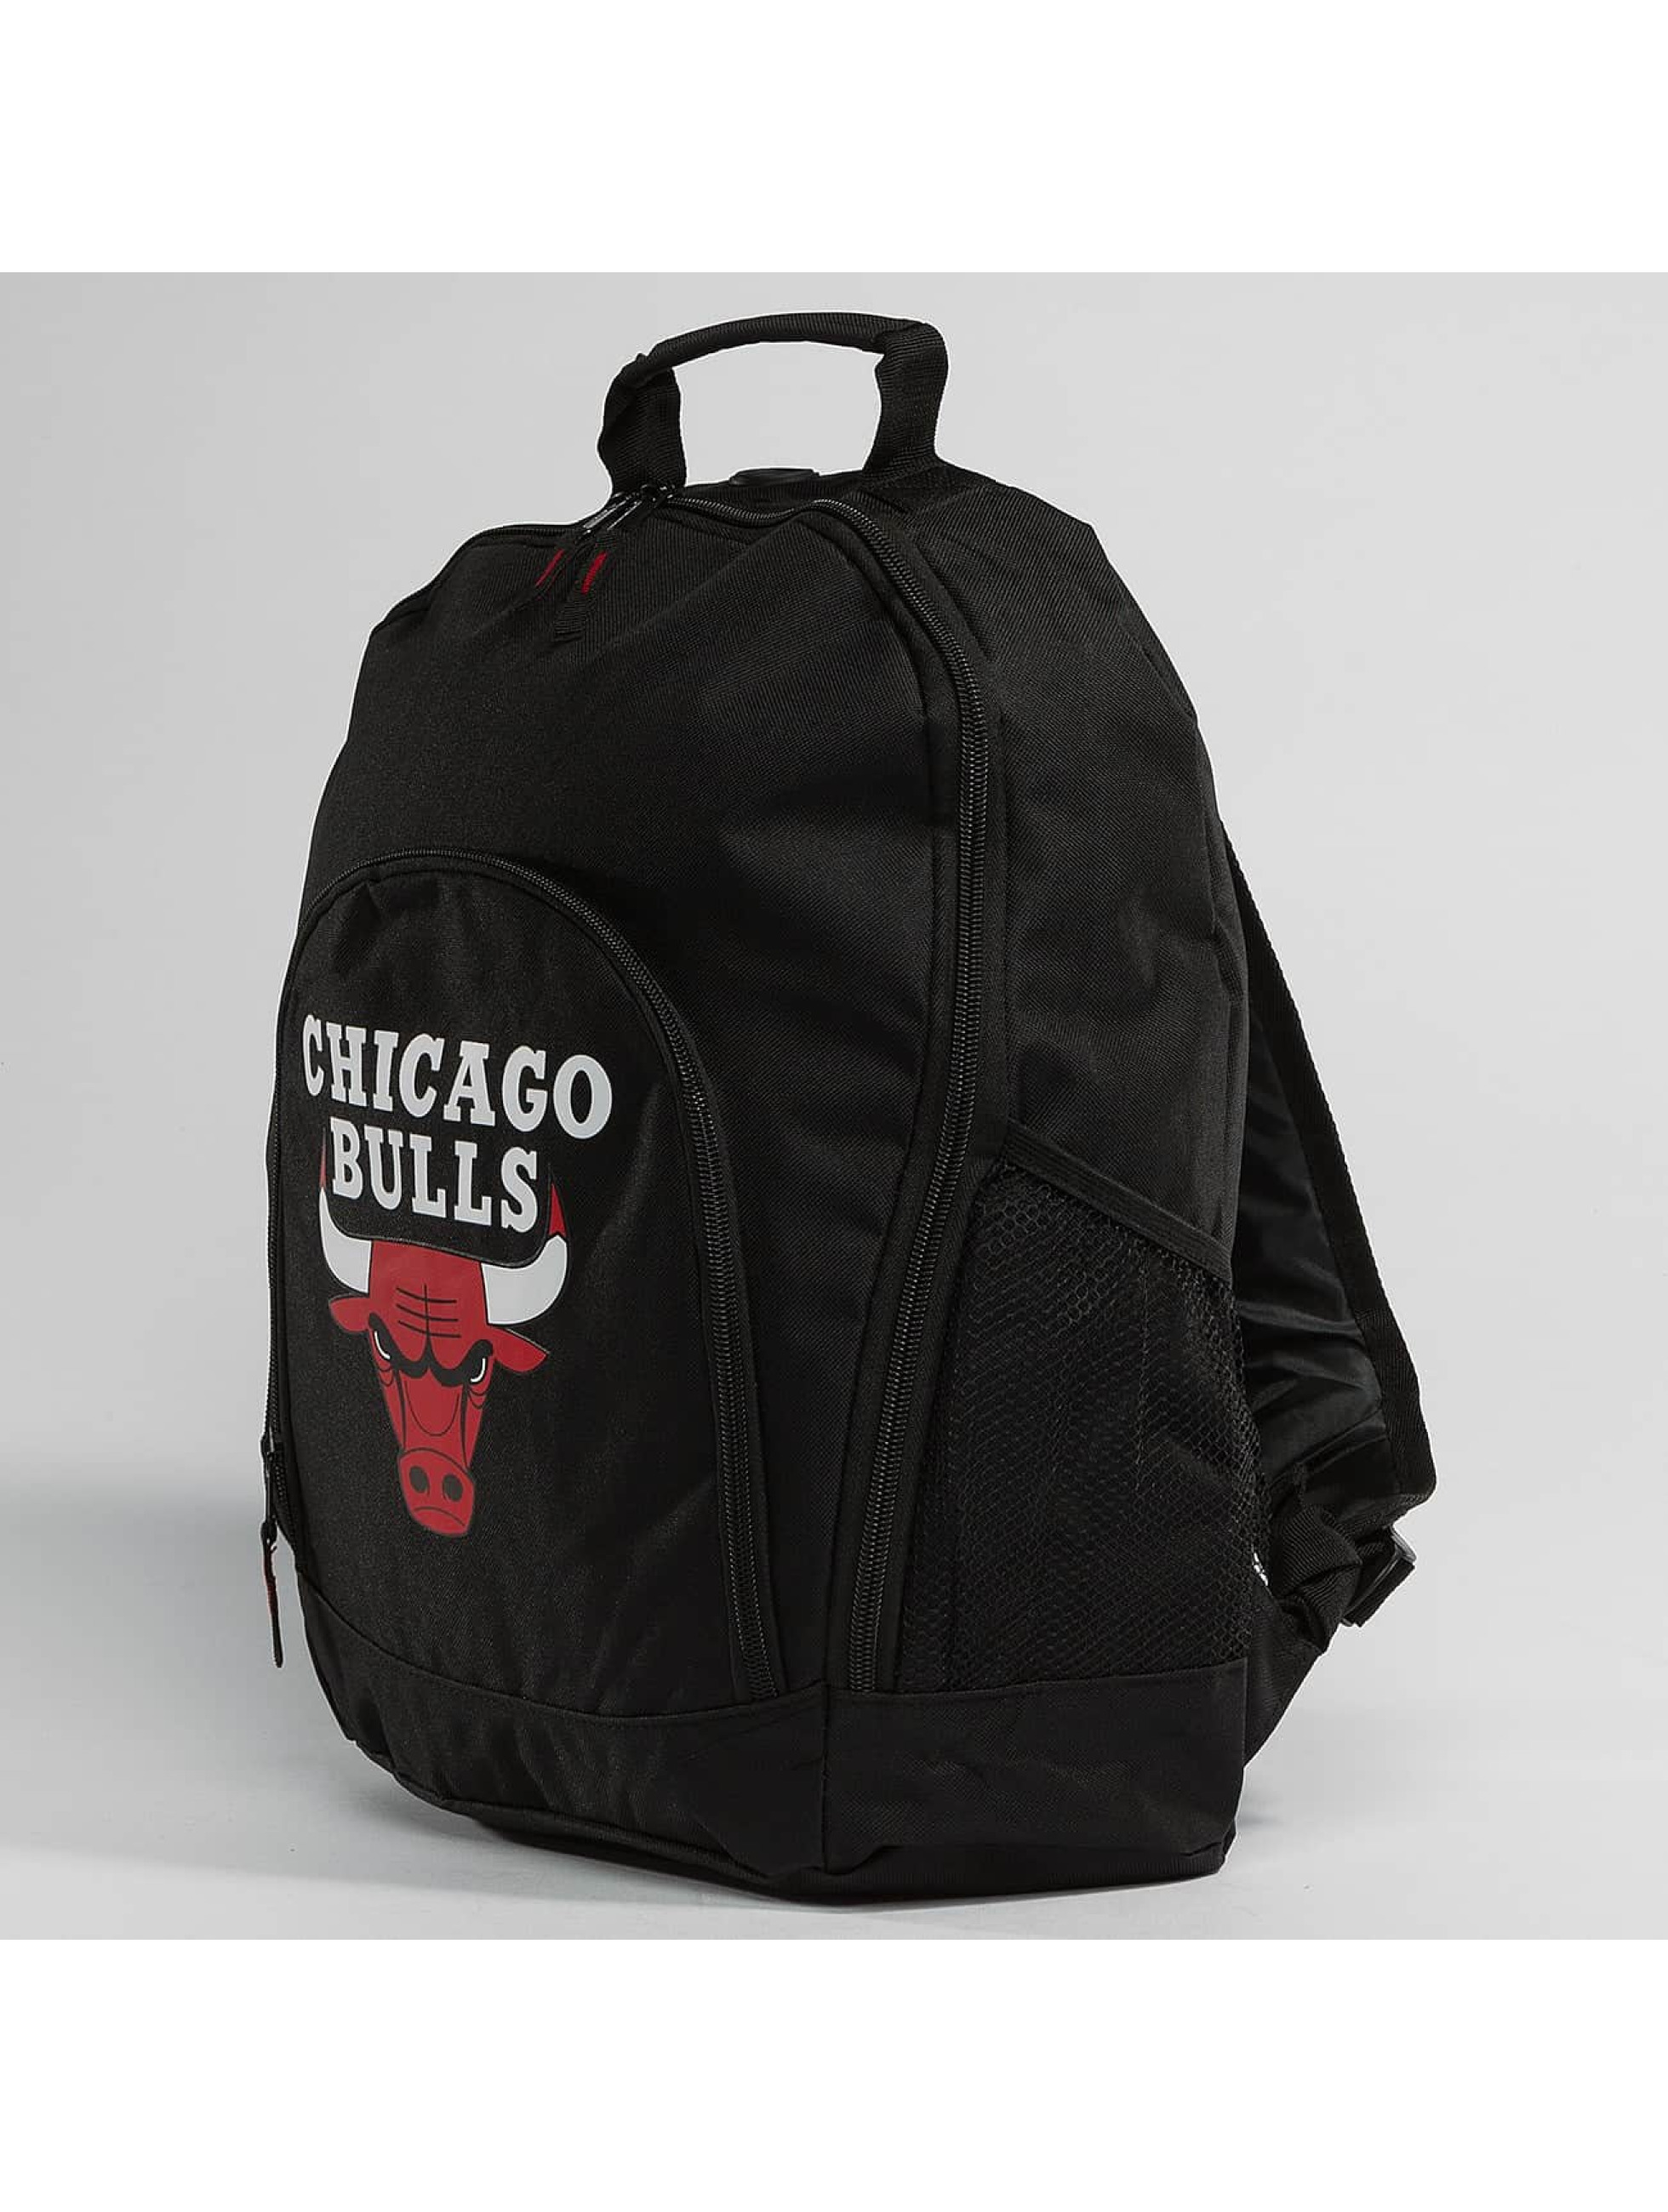 Forever Collectibles Rygsæk NBA Chicago Bulls sort